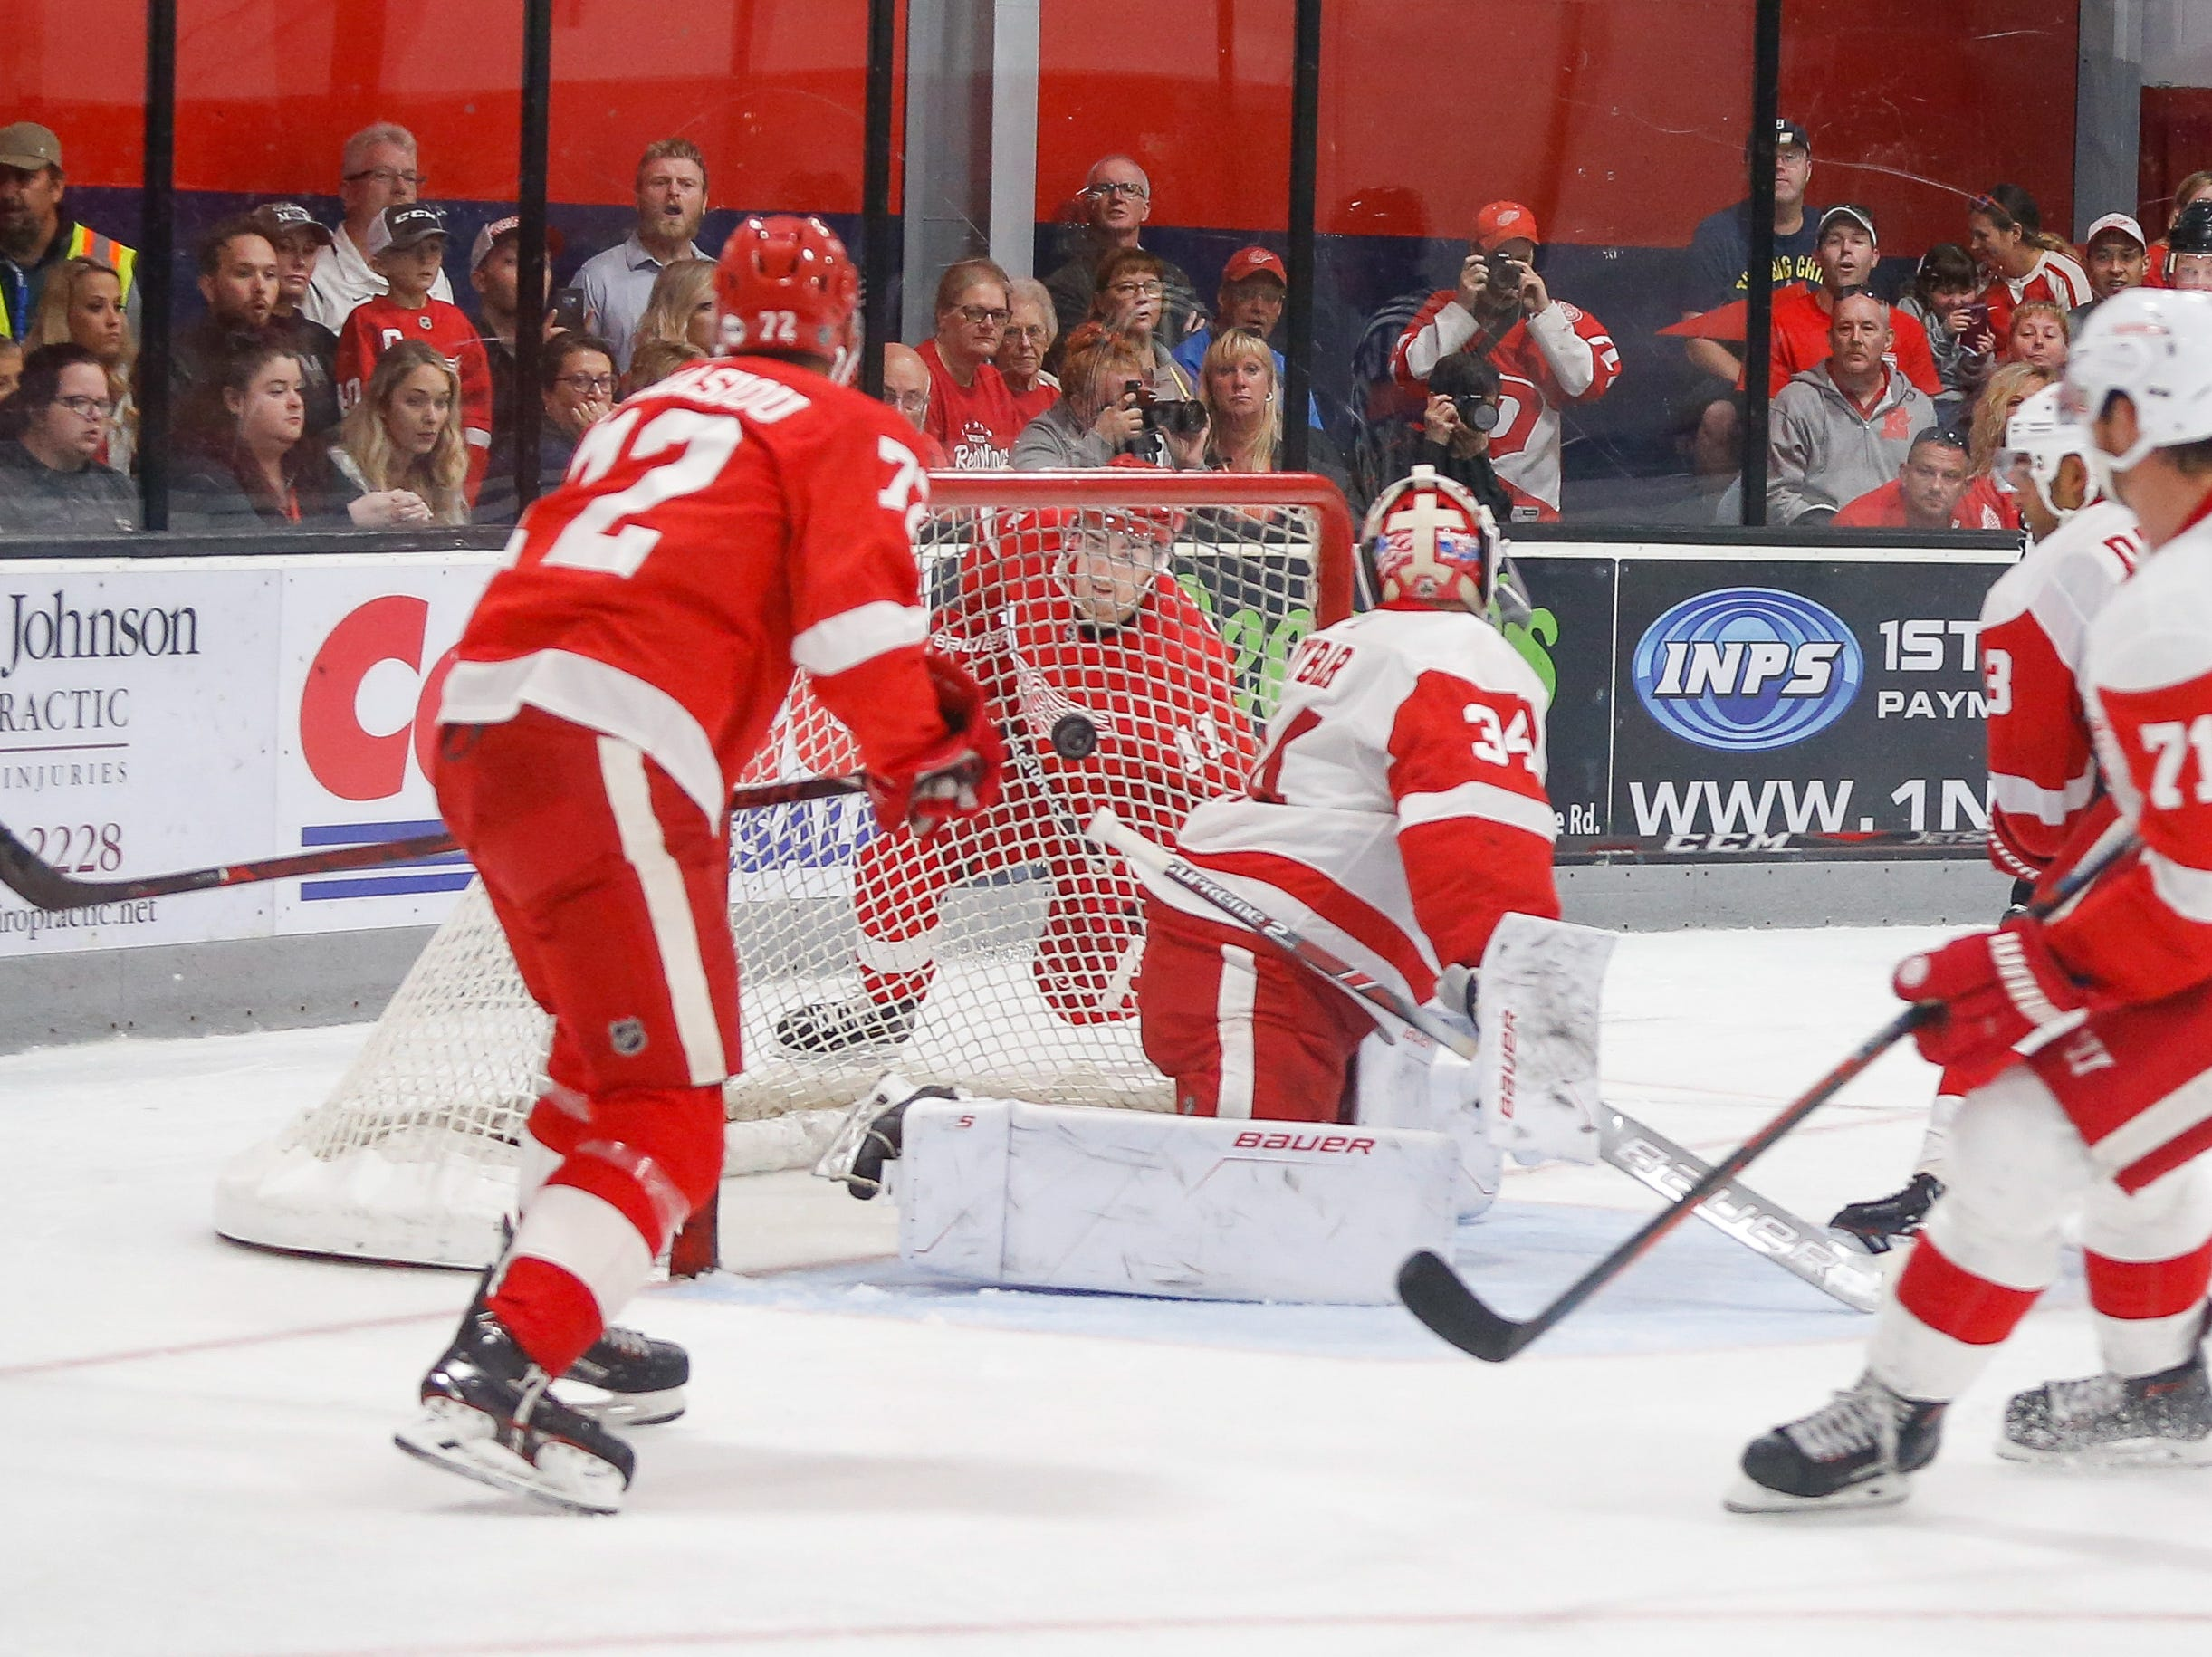 Filip Zadina, the Red Wings' top pick of the 2018 NHL draft, watches from behind the net as his second-period shot slips behind Patrik Rybar for a score, giving Team Red a 4-2 lead.